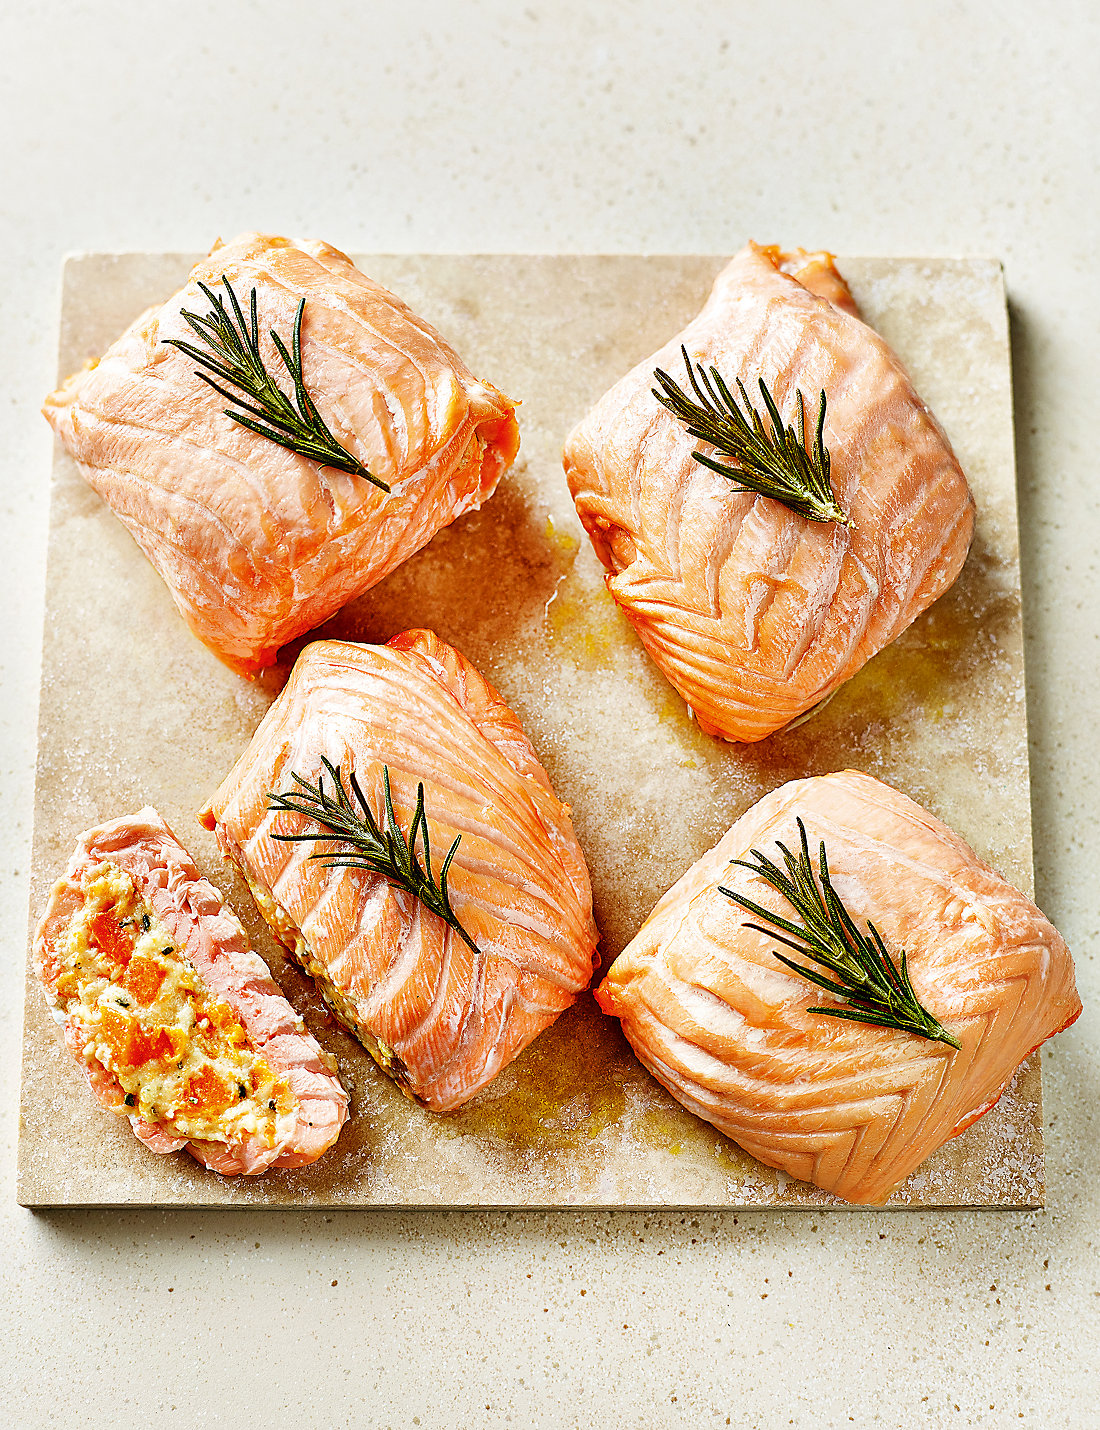 Sunday roast fishes sunday roast salmon fillets ms lochmuirtrade salmon paupiettes with butternut squash mascarpone ccuart Gallery